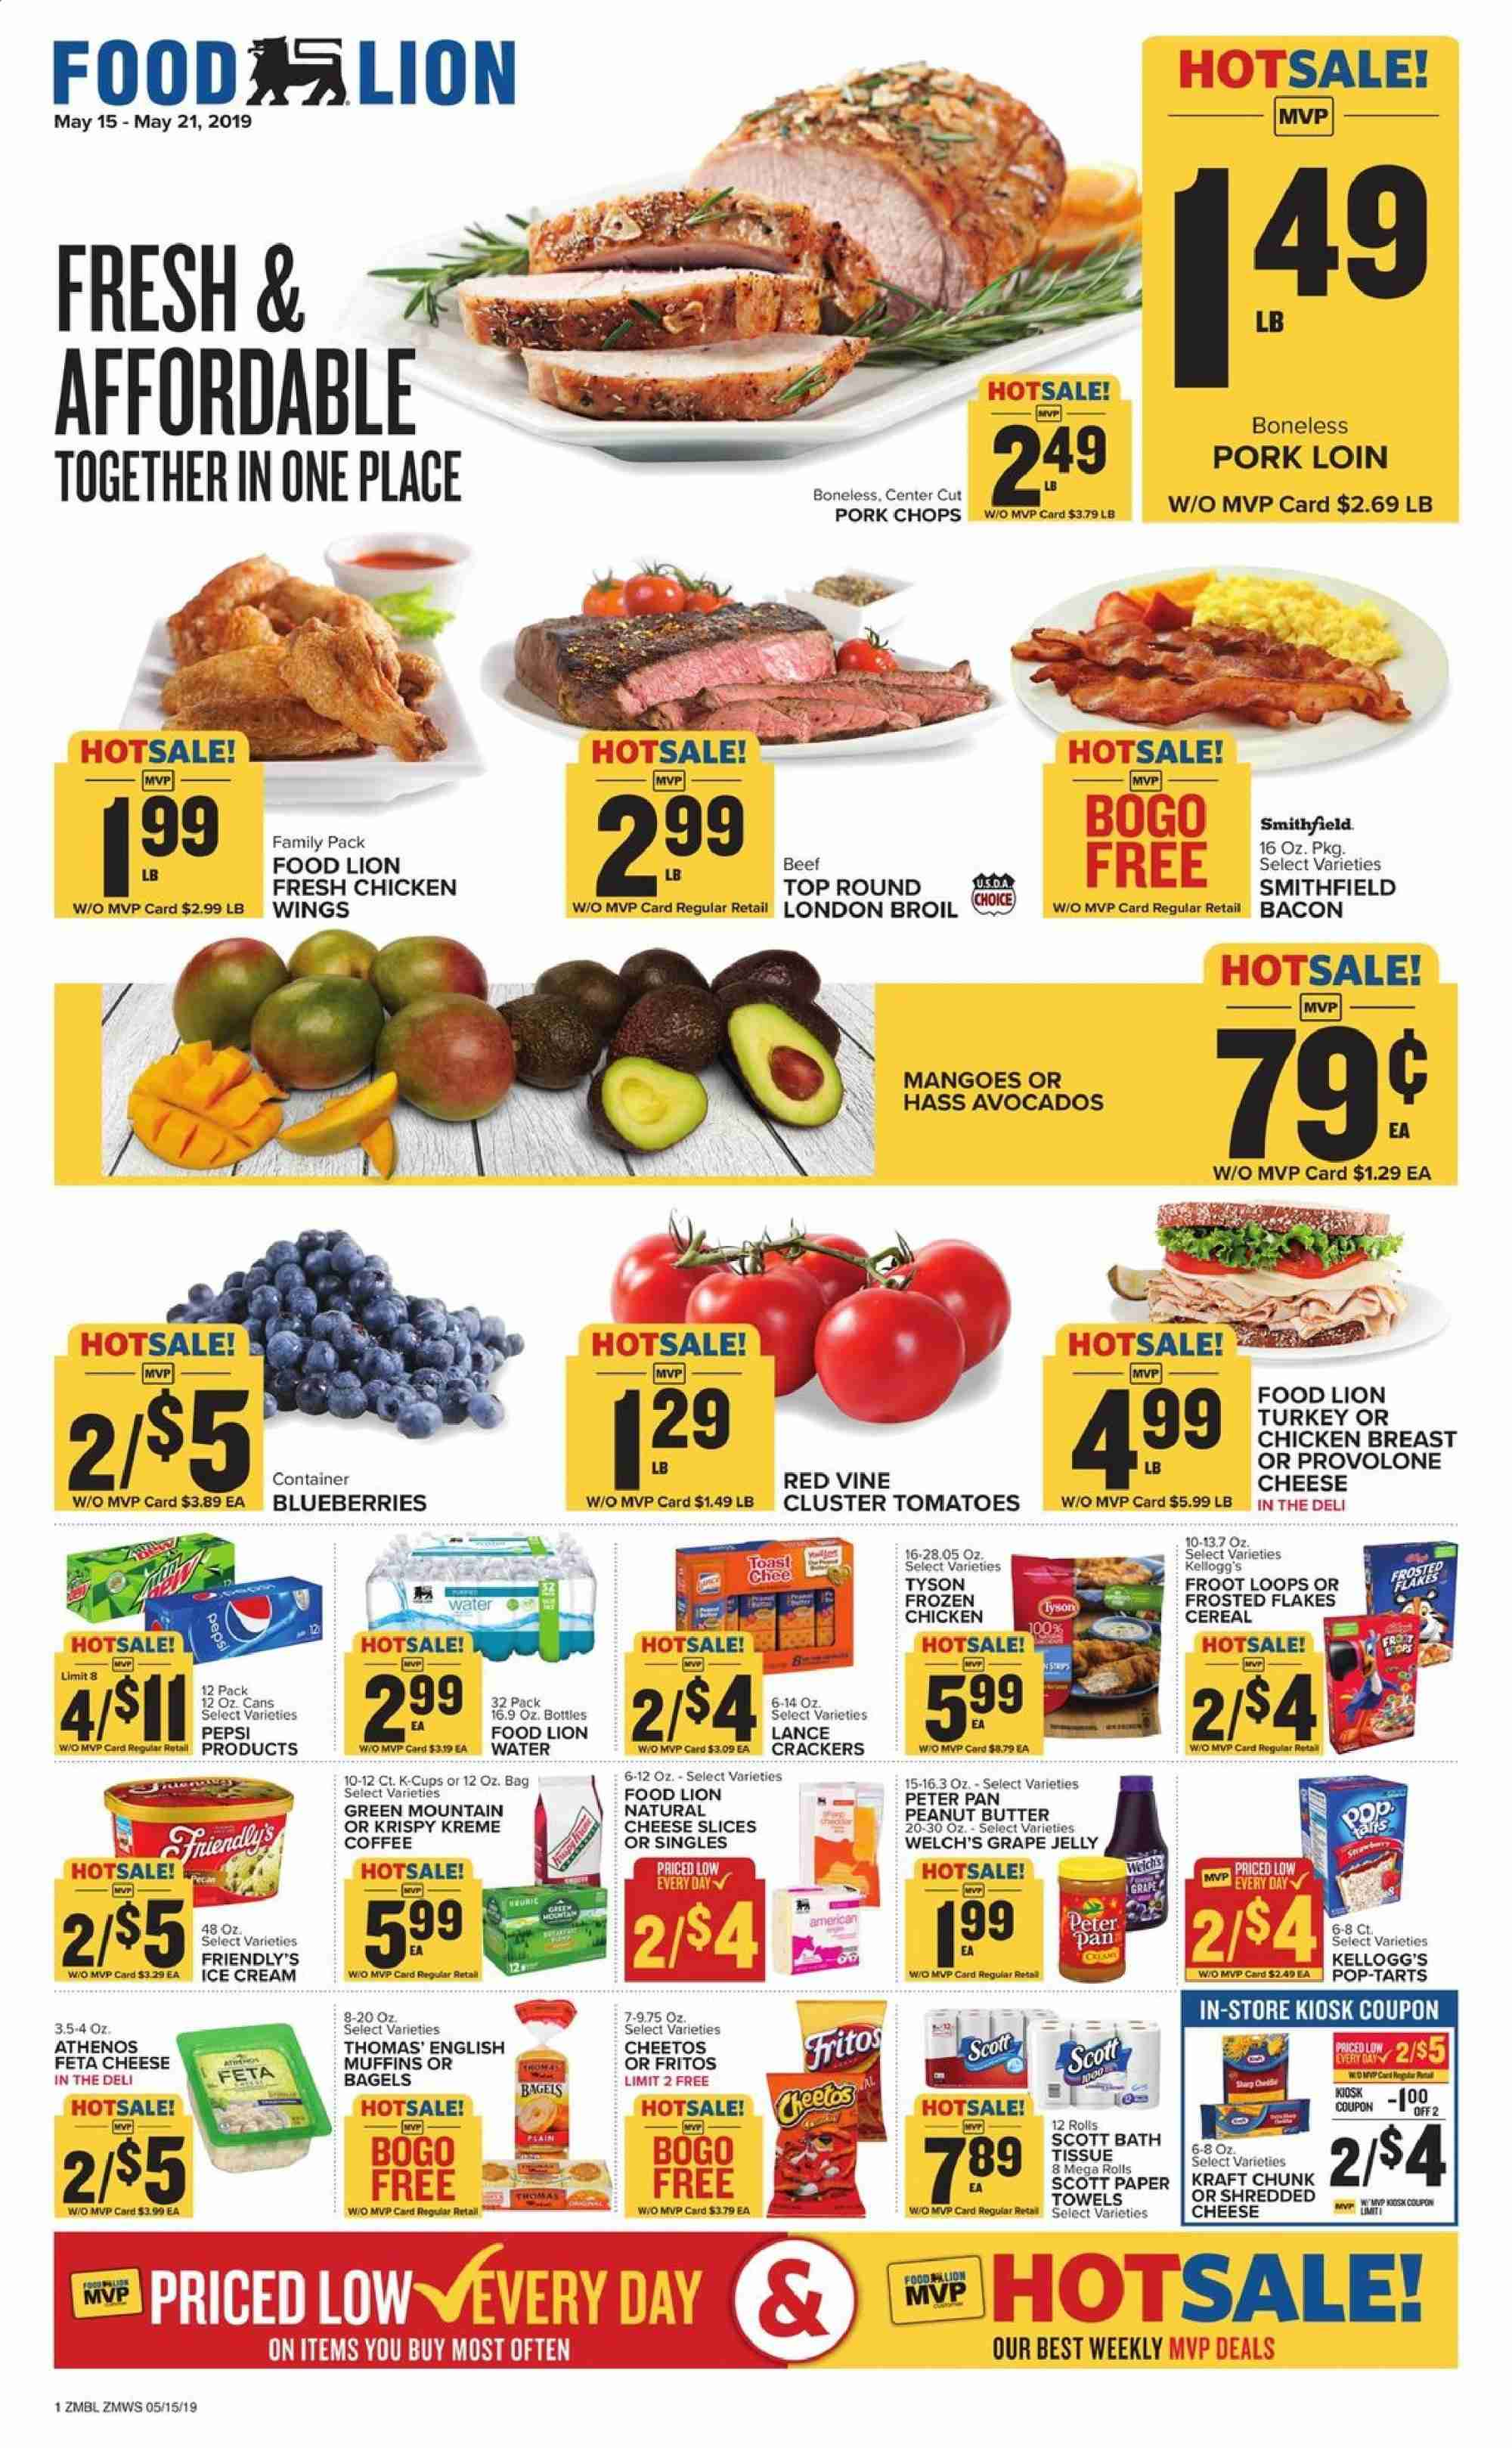 Food Lion Flyer - 05.15.2019 - 05.21.2019 - Sales products - tomatoes, avocado, blueberries, grapes, mango, muffin, english muffins, bacon, feta, cheese, jelly, cracker, crackers, Cheetos, grape jelly, peanut butter, water, turkey, chicken, chicken breast, chicken wings, pork chops, pork meat, pan, Frozen, paper, muffins, cream. Page 1.